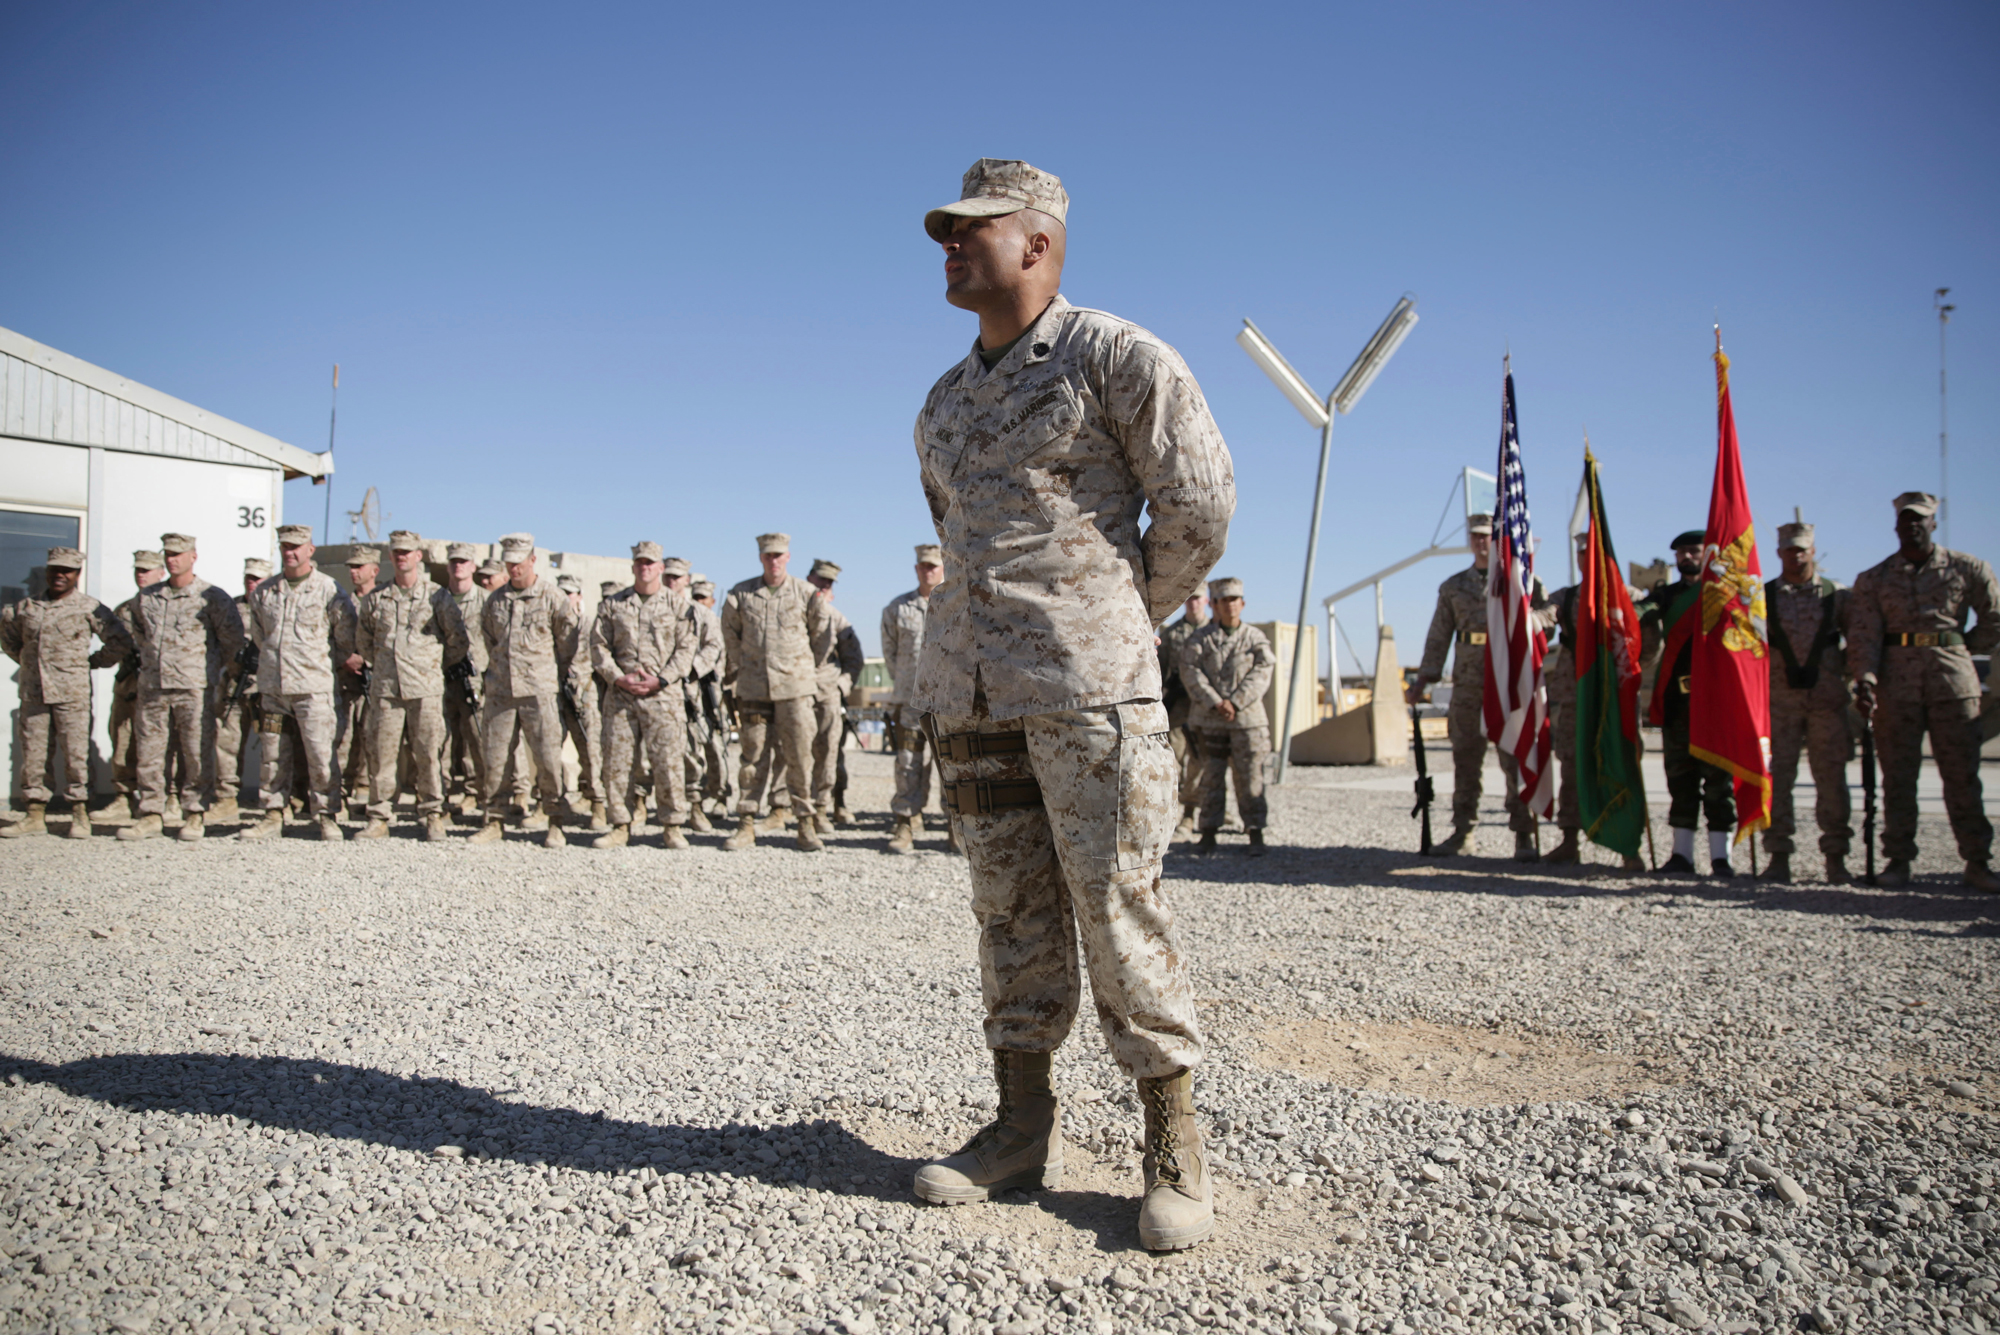 U.S. Marines stand guard at Task Force Southwest military field in Shorab military camp of Helmand province, Afghanistan